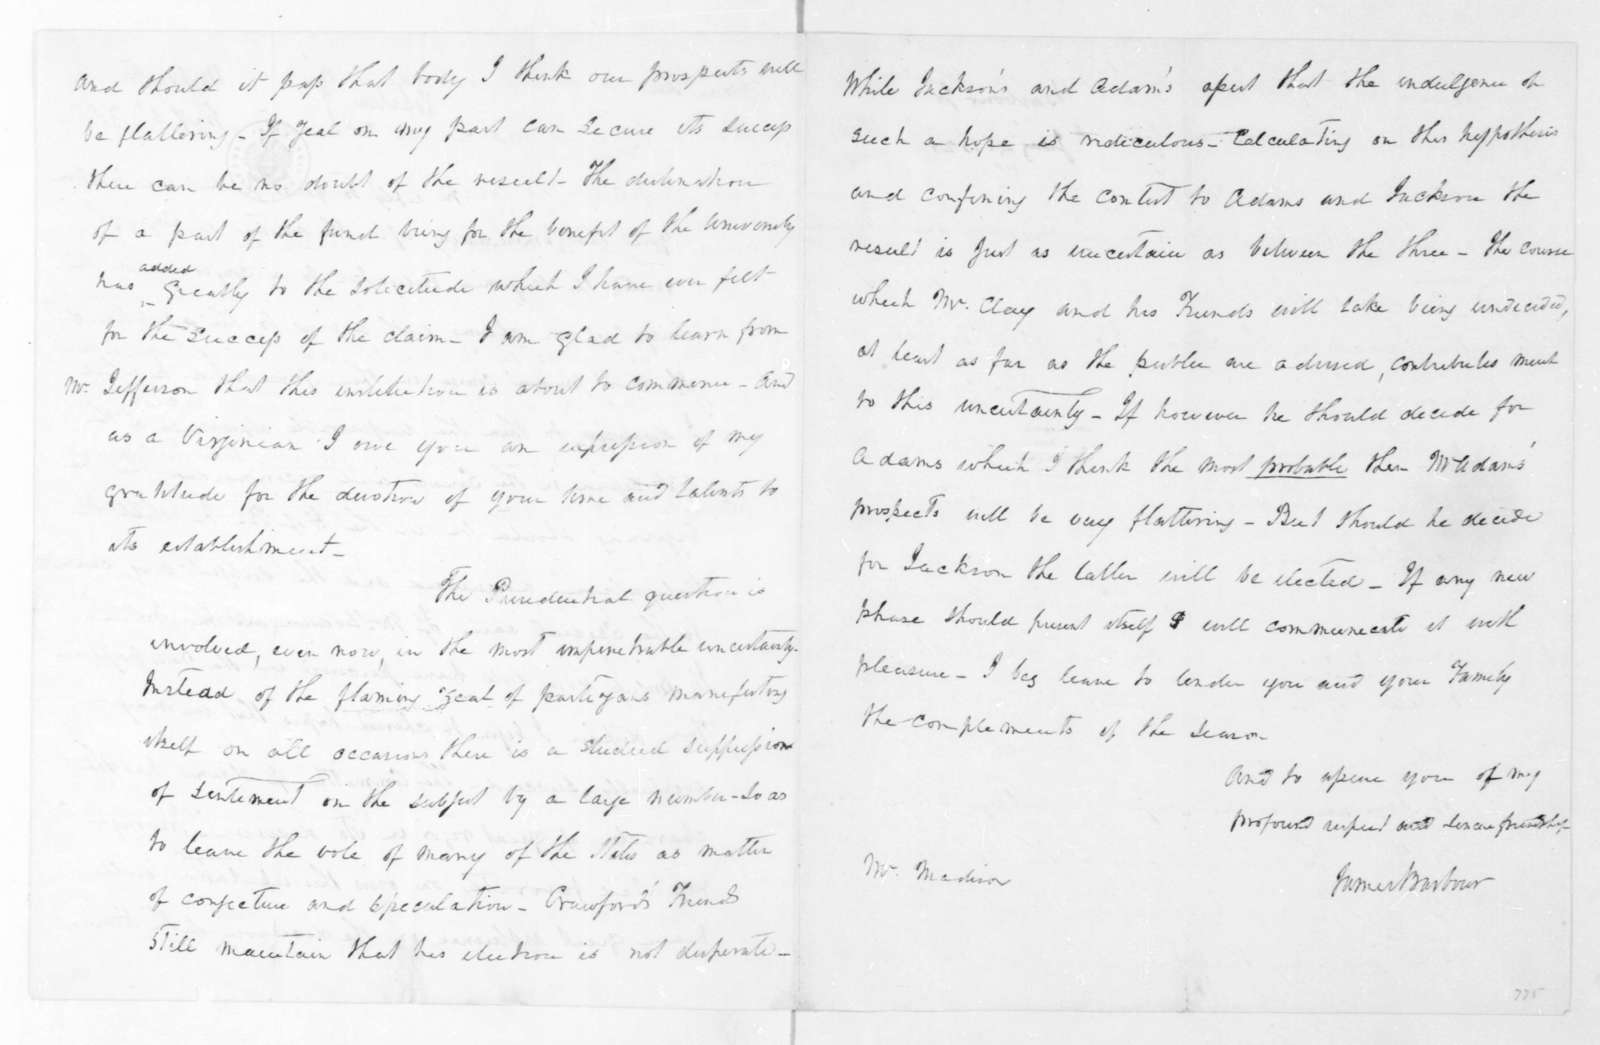 J. S. Barbour to James Madison, January 4, 1825.